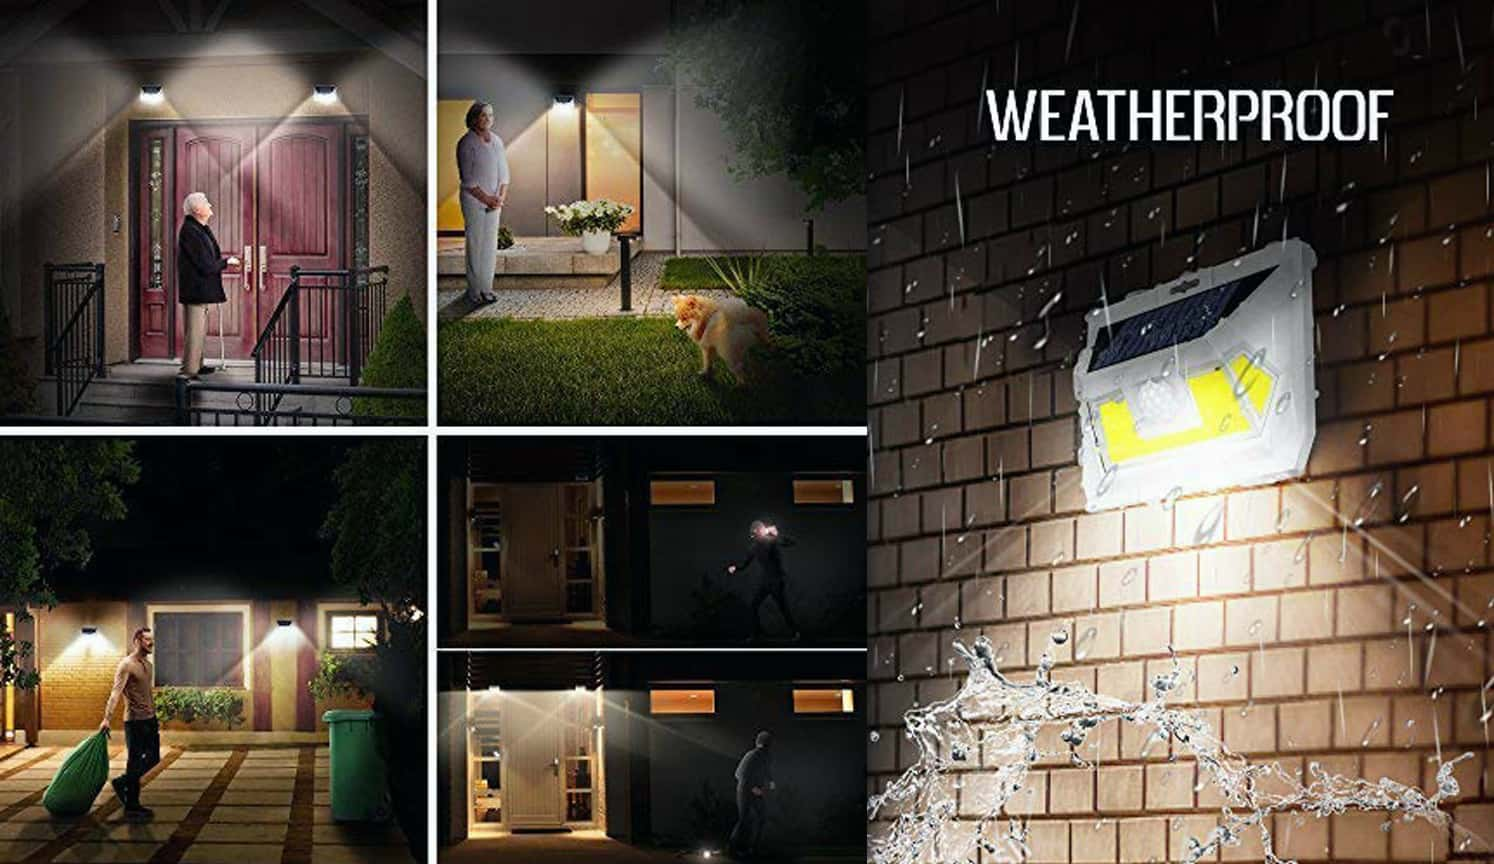 Solar Motion Sensor Light as the third related product of Outdoor Patio Lights